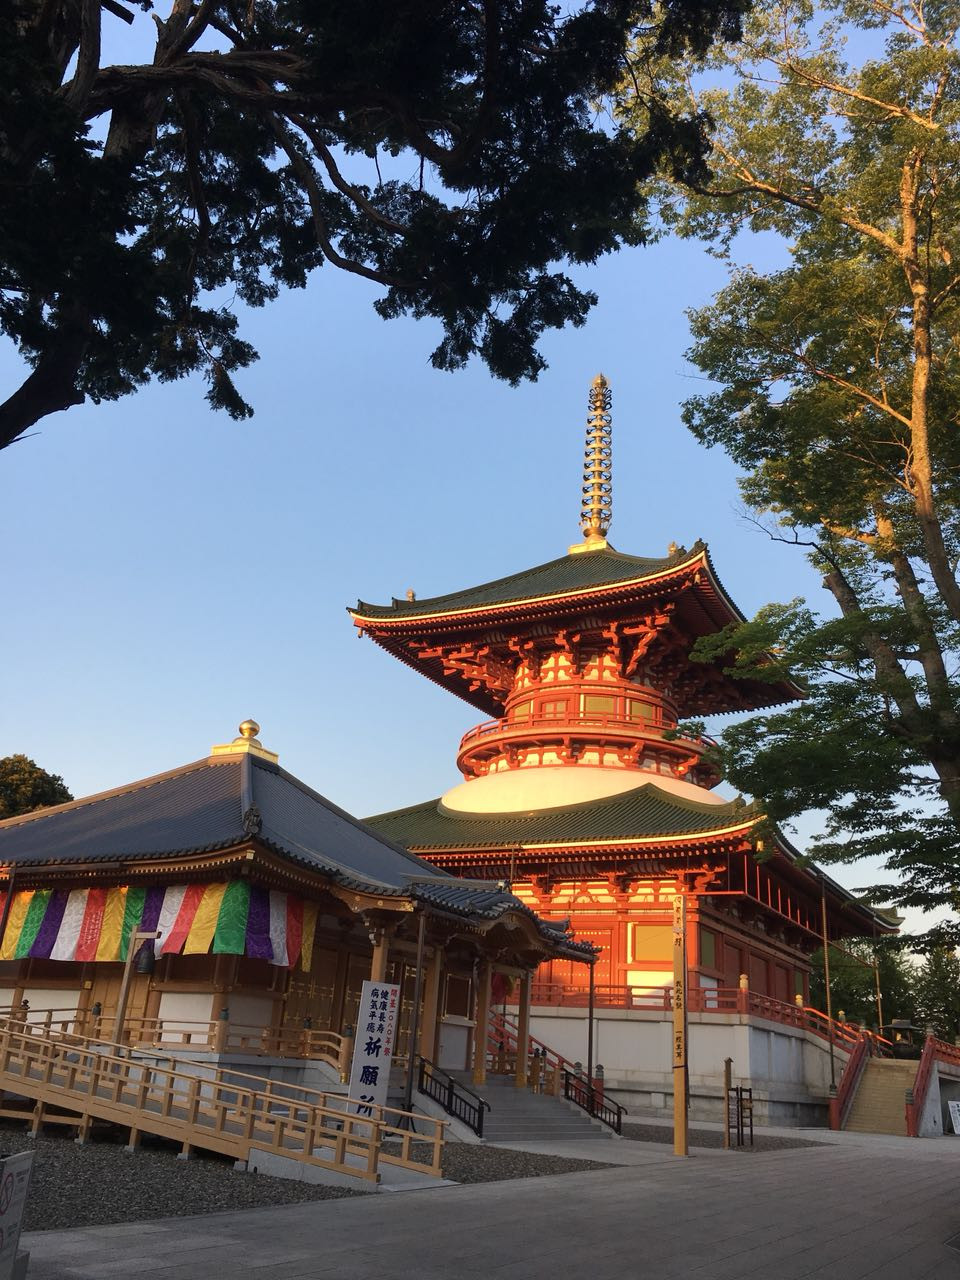 Daito - Great pagoda of peace